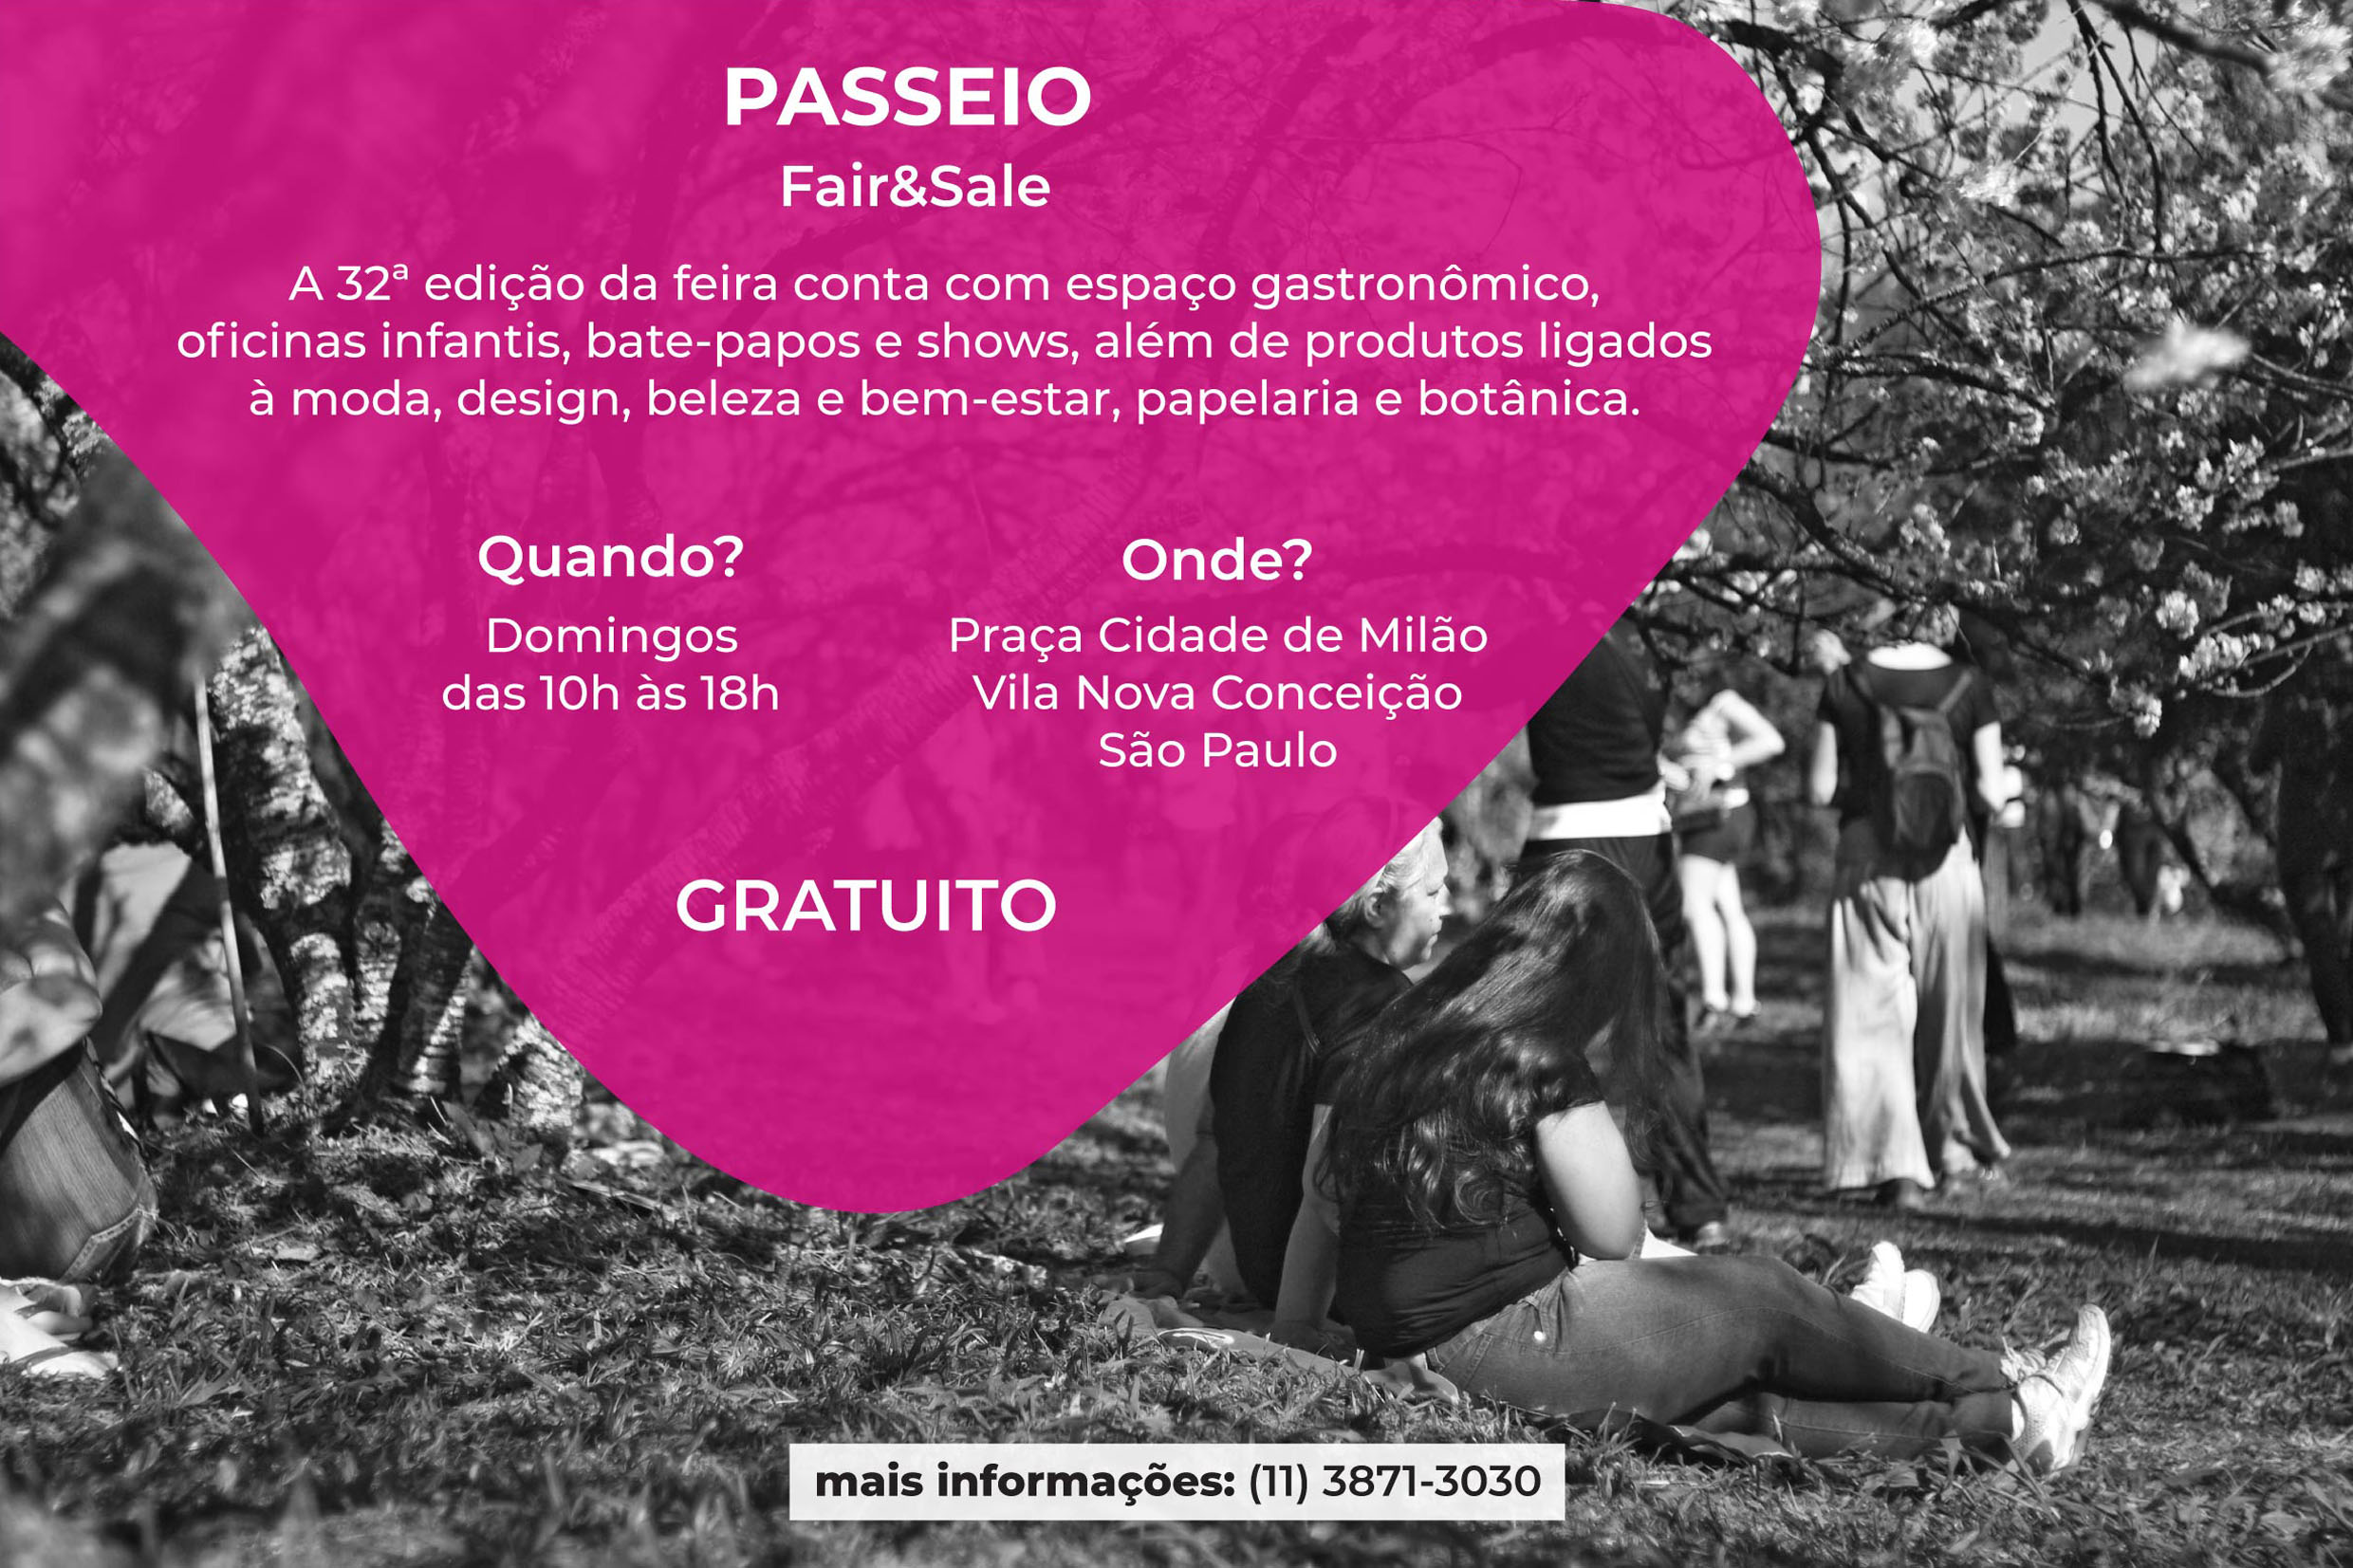 Agência Alesp<a style='float:right' href='https://www3.al.sp.gov.br/repositorio/noticia/N-07-2019/fg236971.jpg' target=_blank><img src='/_img/material-file-download-white.png' width='14px' alt='Clique para baixar a imagem'></a>